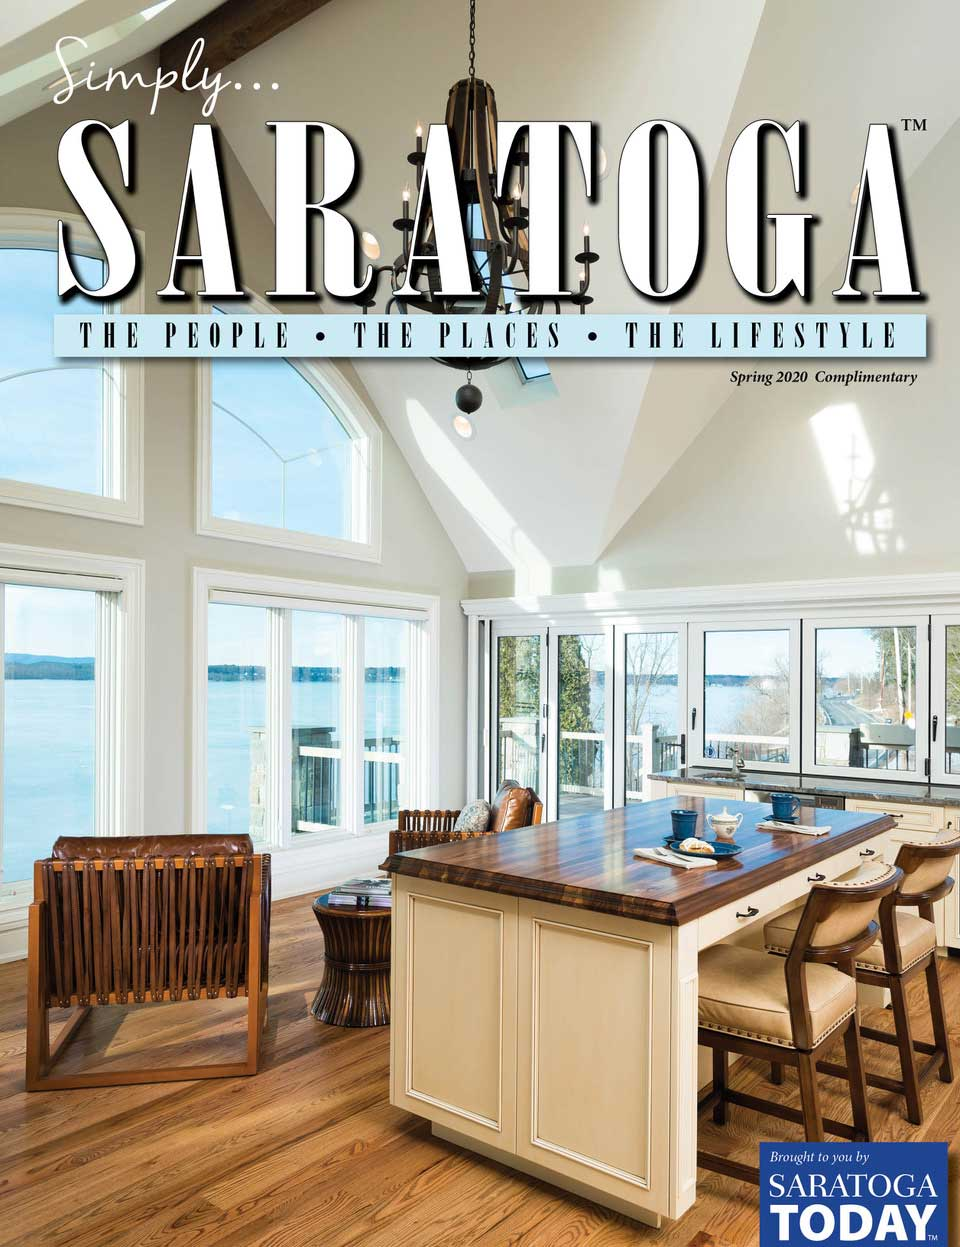 Simply Saratoga article SMART Traveler